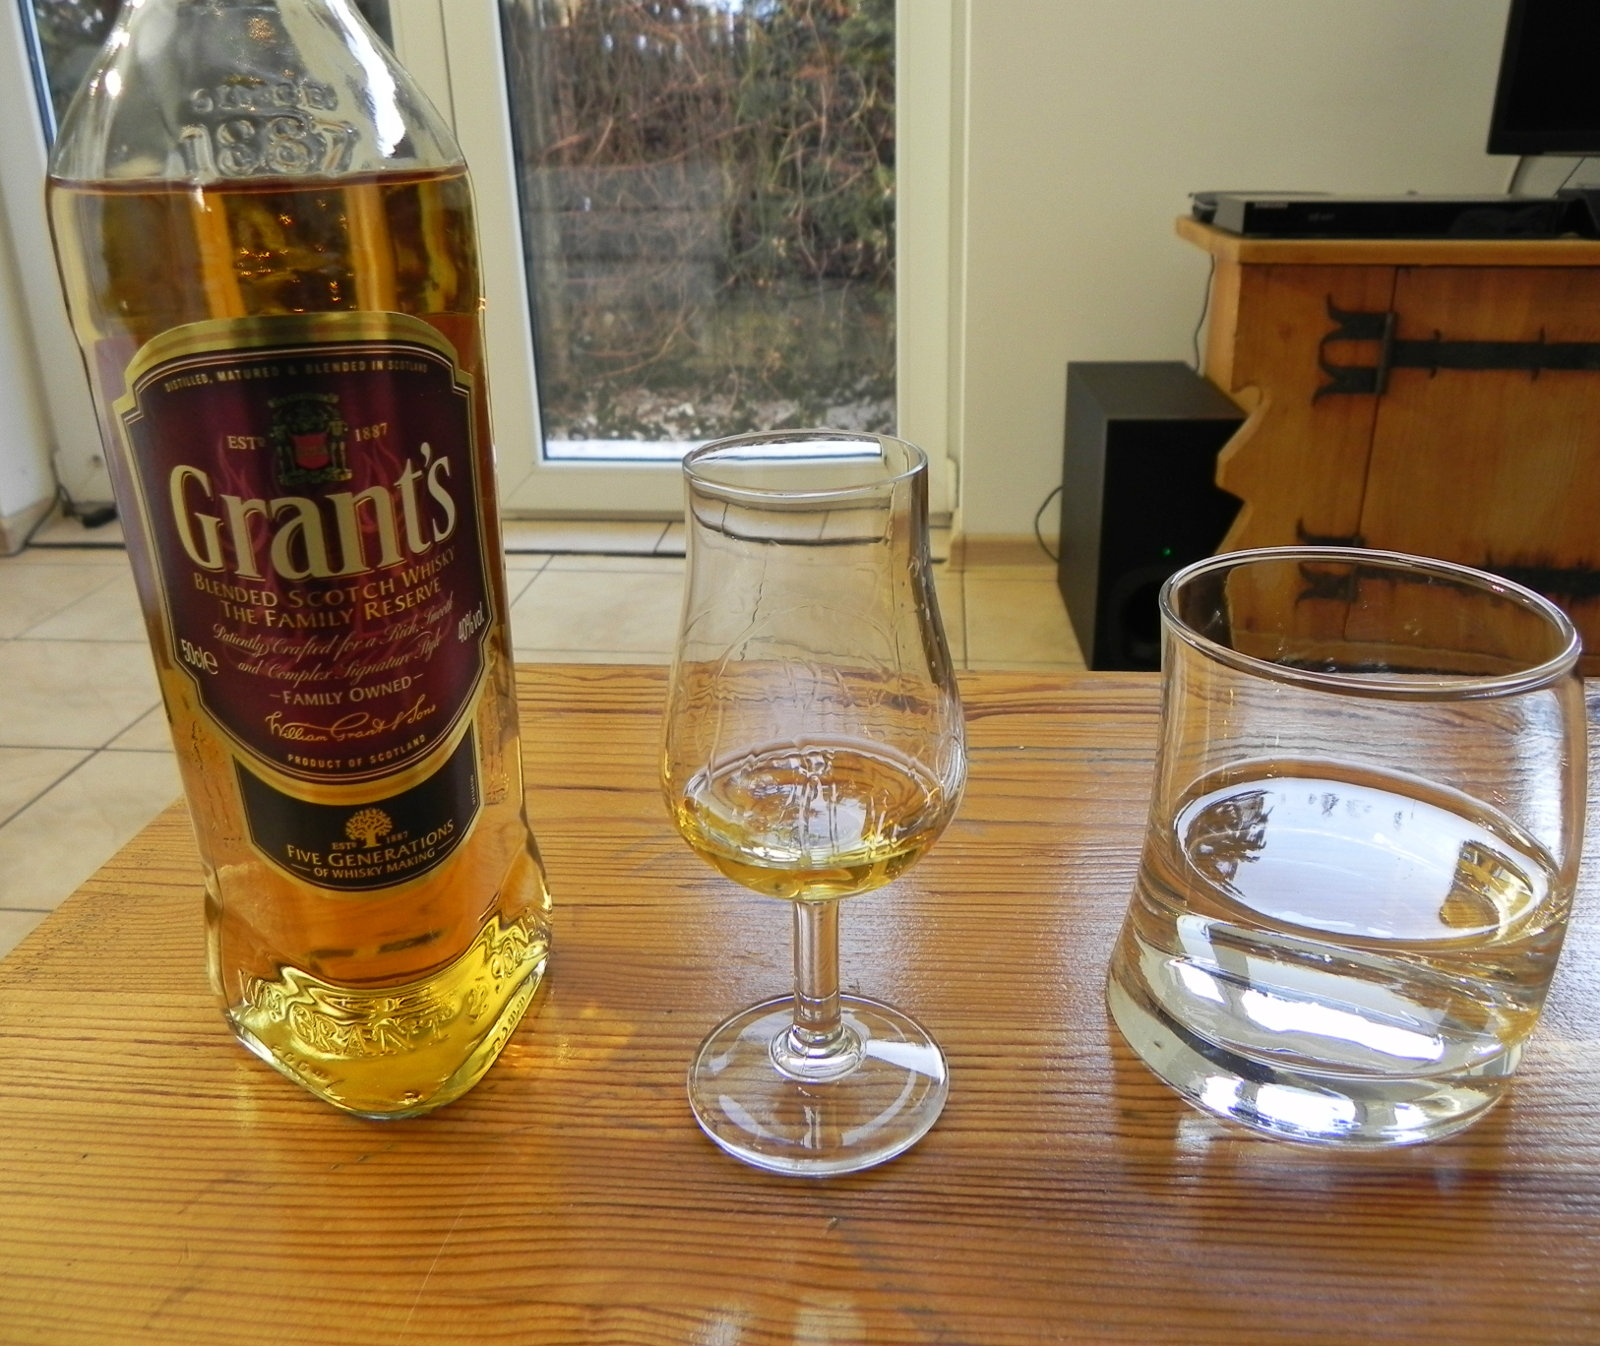 Grant's Family Reserve blended scotch whisky